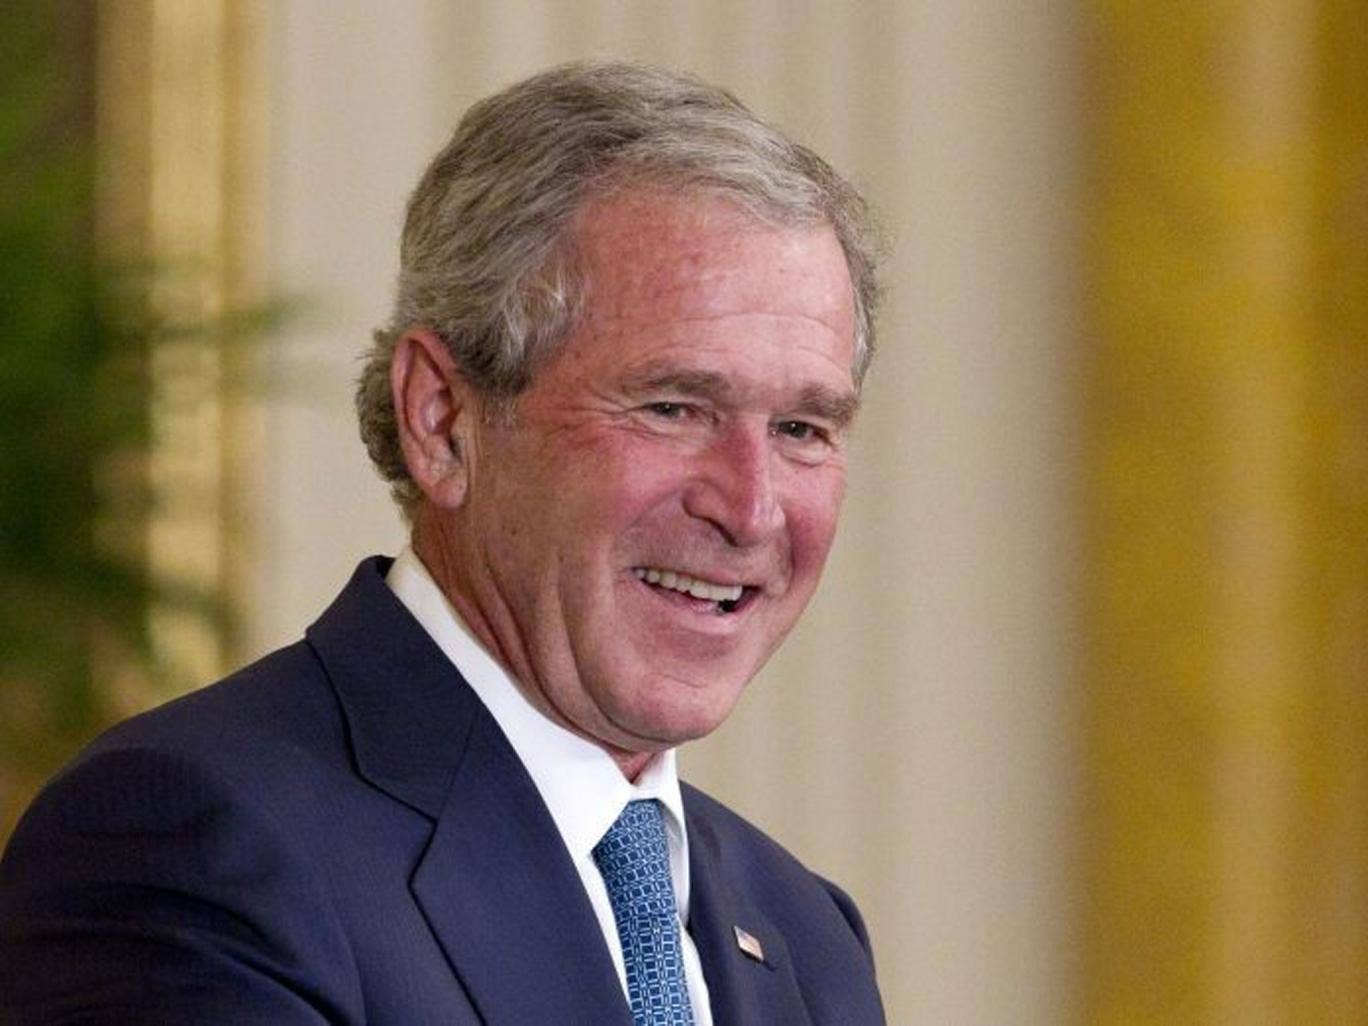 Former US President George W Bush has undergone heart surgery at a hospital in Texas